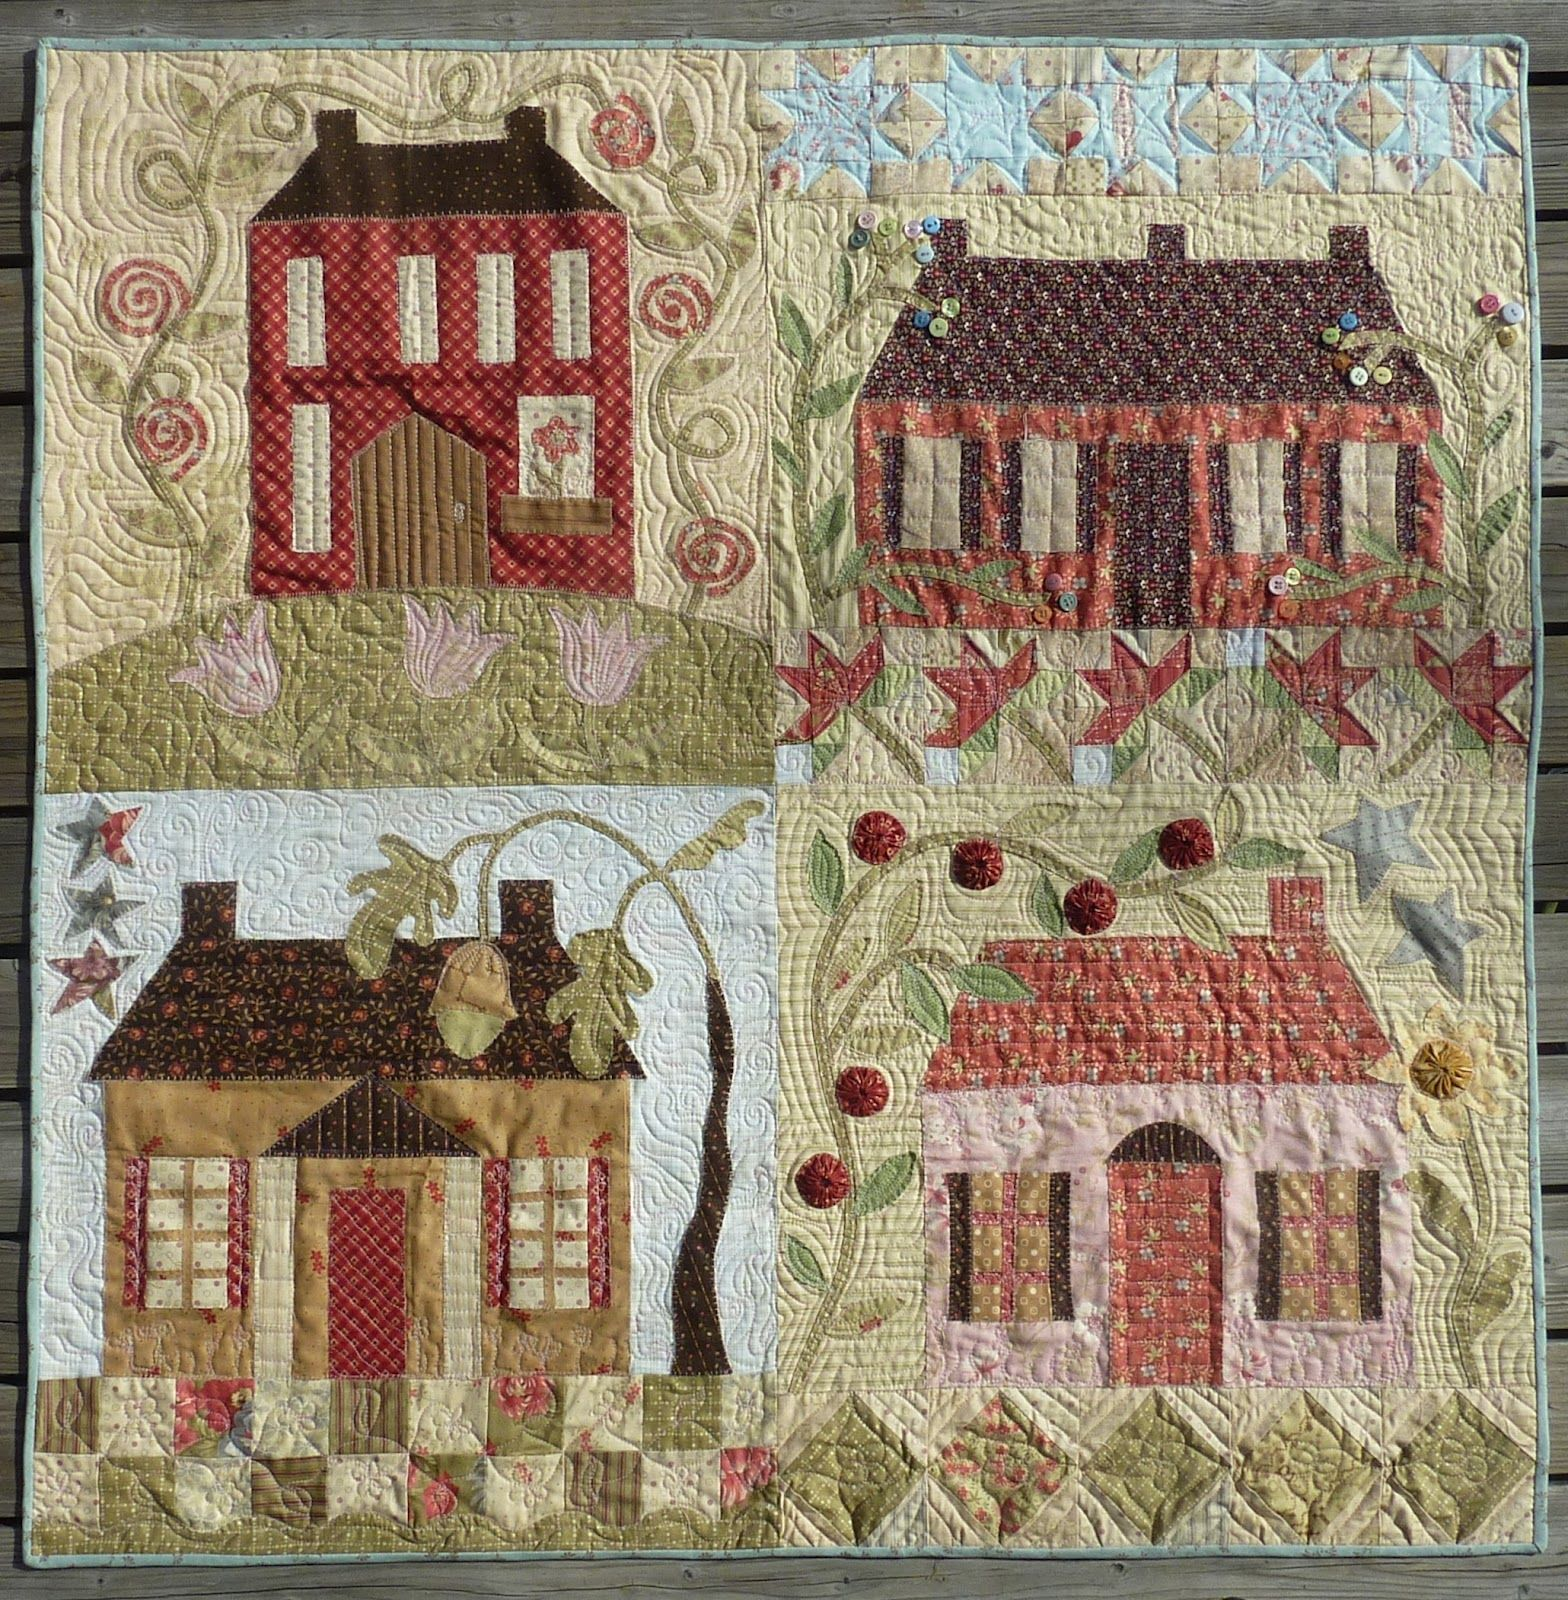 Home Sweet Home Quilt By Summer Louise Truswell Pattern By Barb Adams And Alma Allen Folk